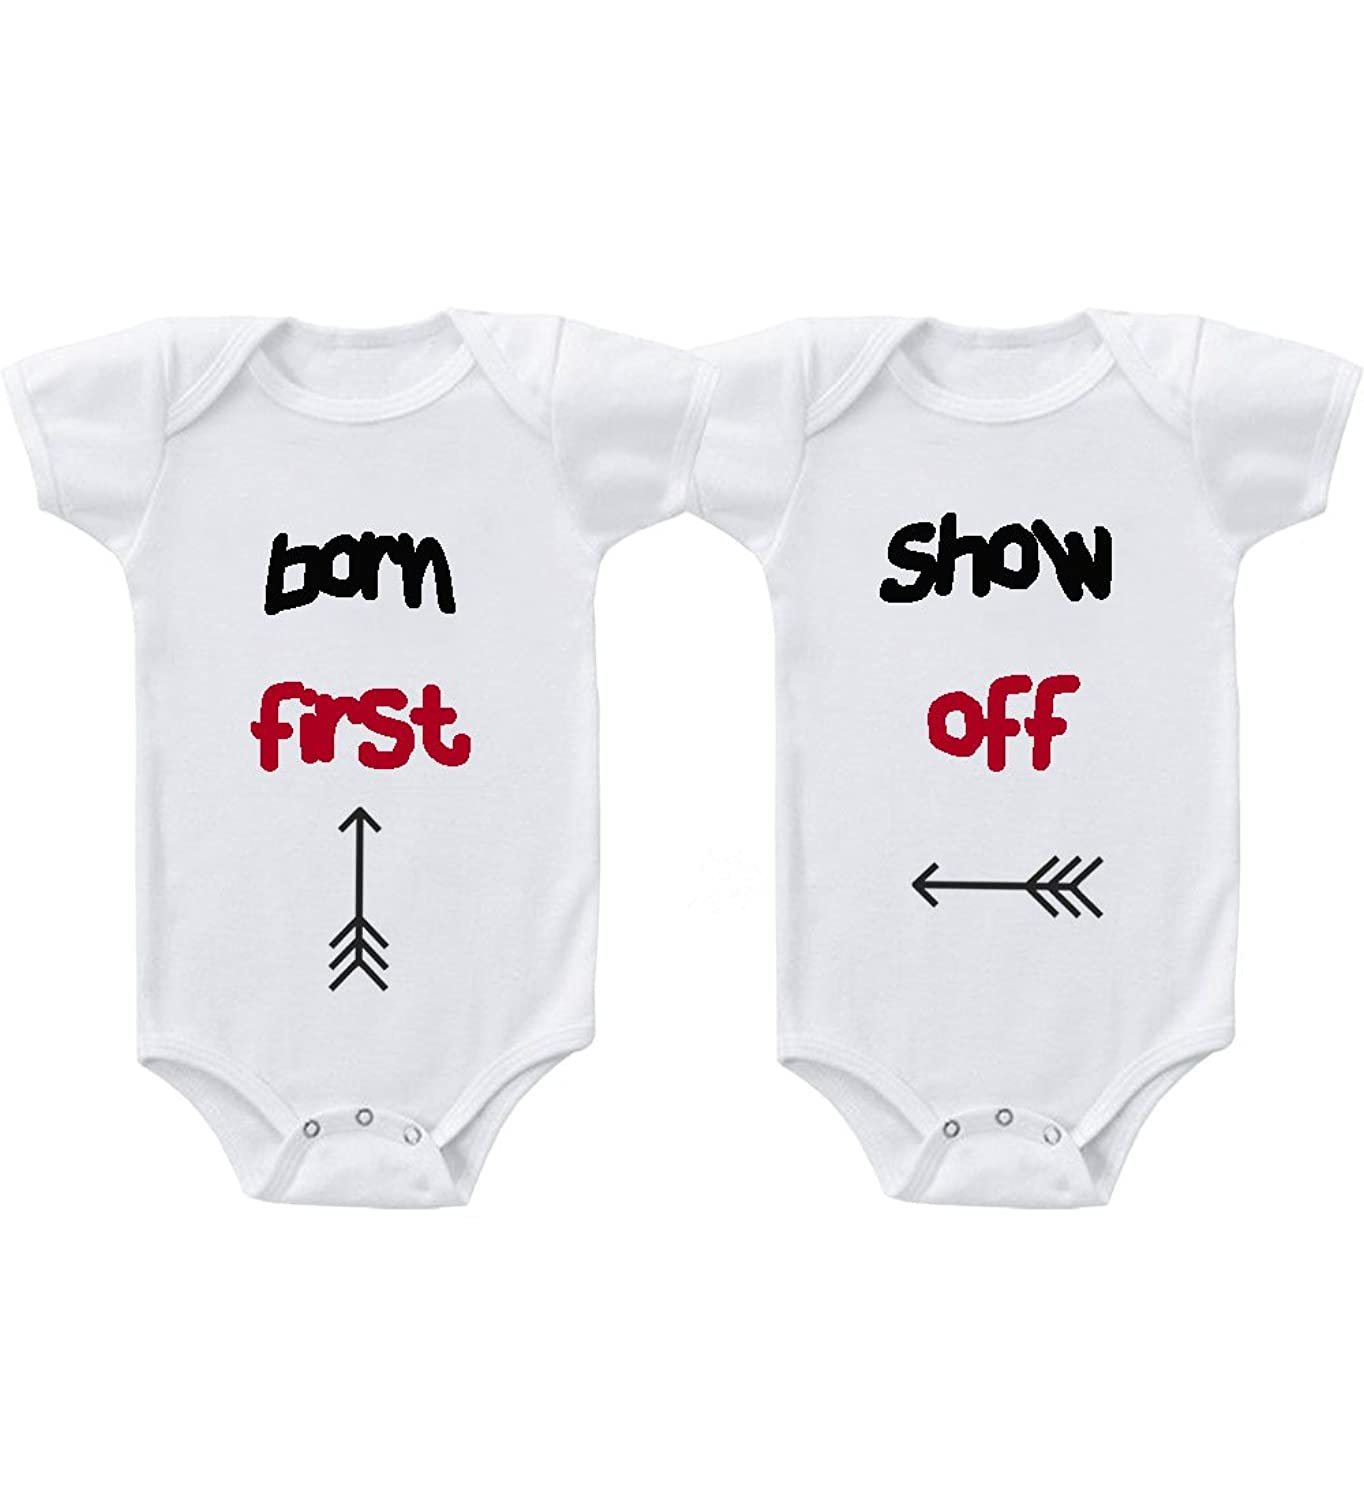 Amazon Born First Show f 2 Twins Infant Short Sleeve Baby